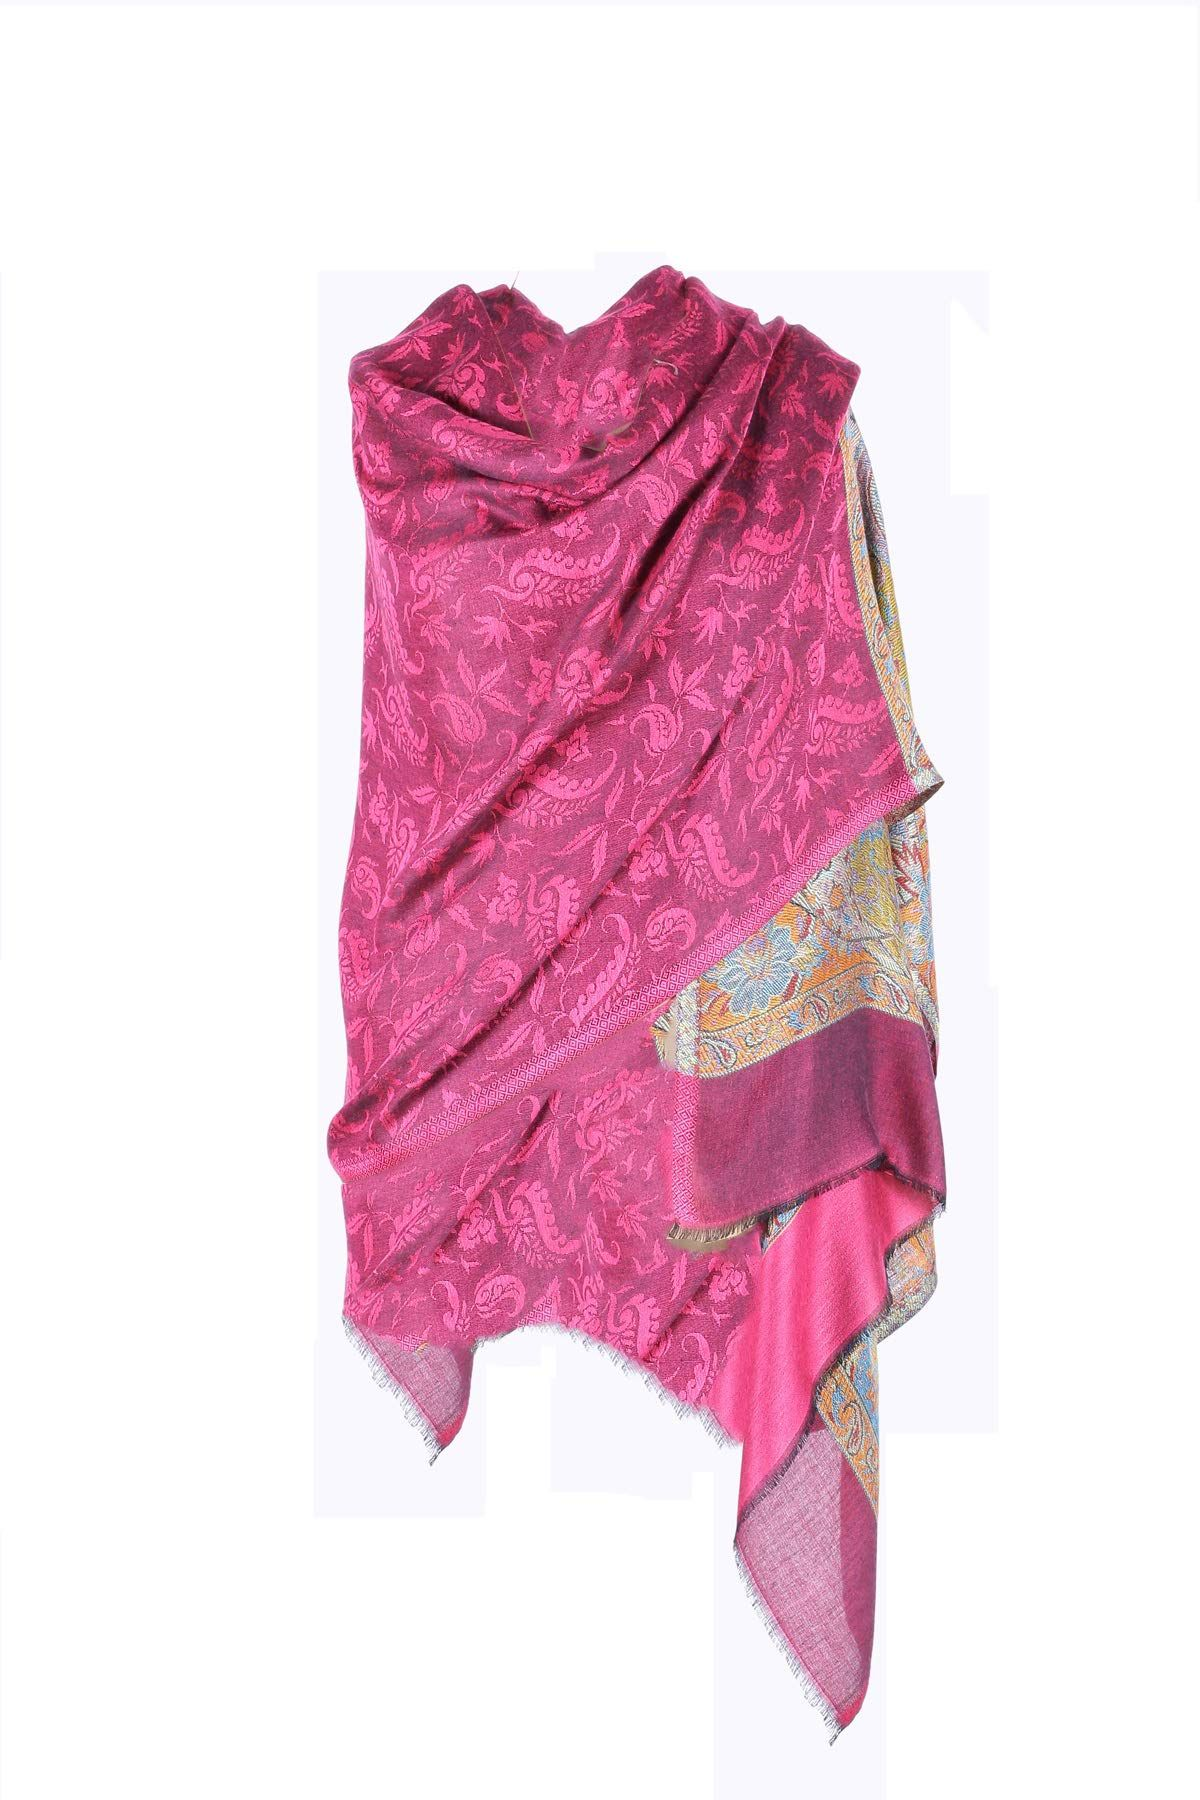 Pashmina Shawls And Wraps Pure Modal Indian Paisley Cashmere Shawl For Women Buy Scarves And Wraps Buy Scarf Cashmere Shawl Shawls And Wraps